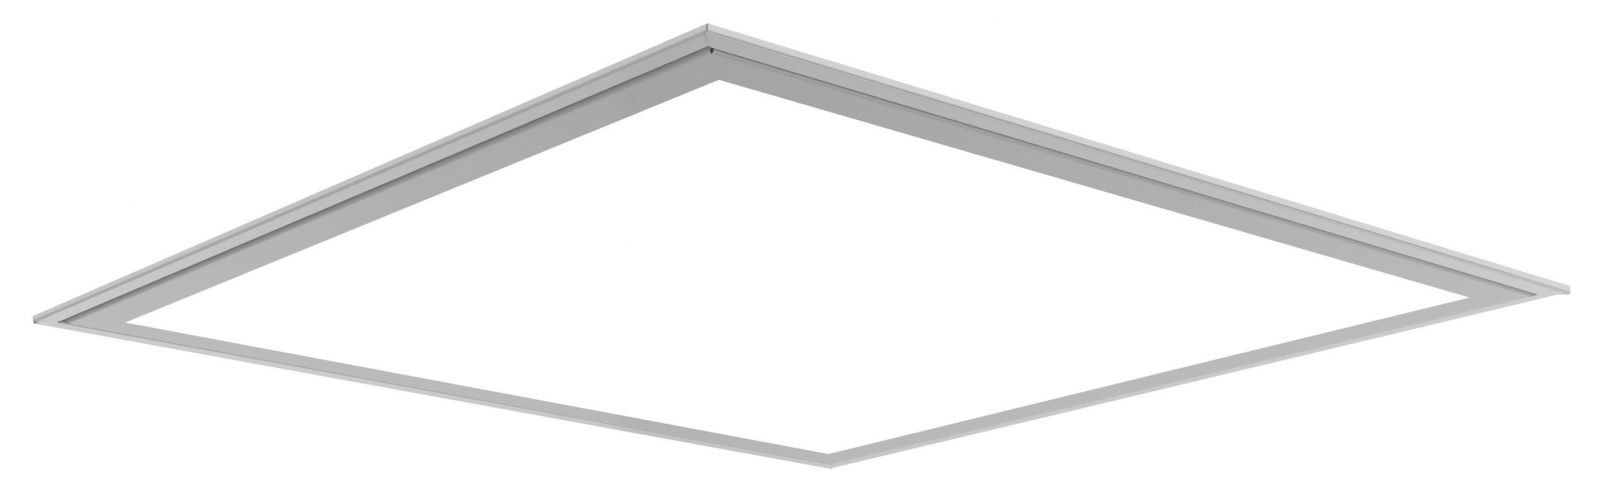 Landlite 36d213 36w Led Panel Light